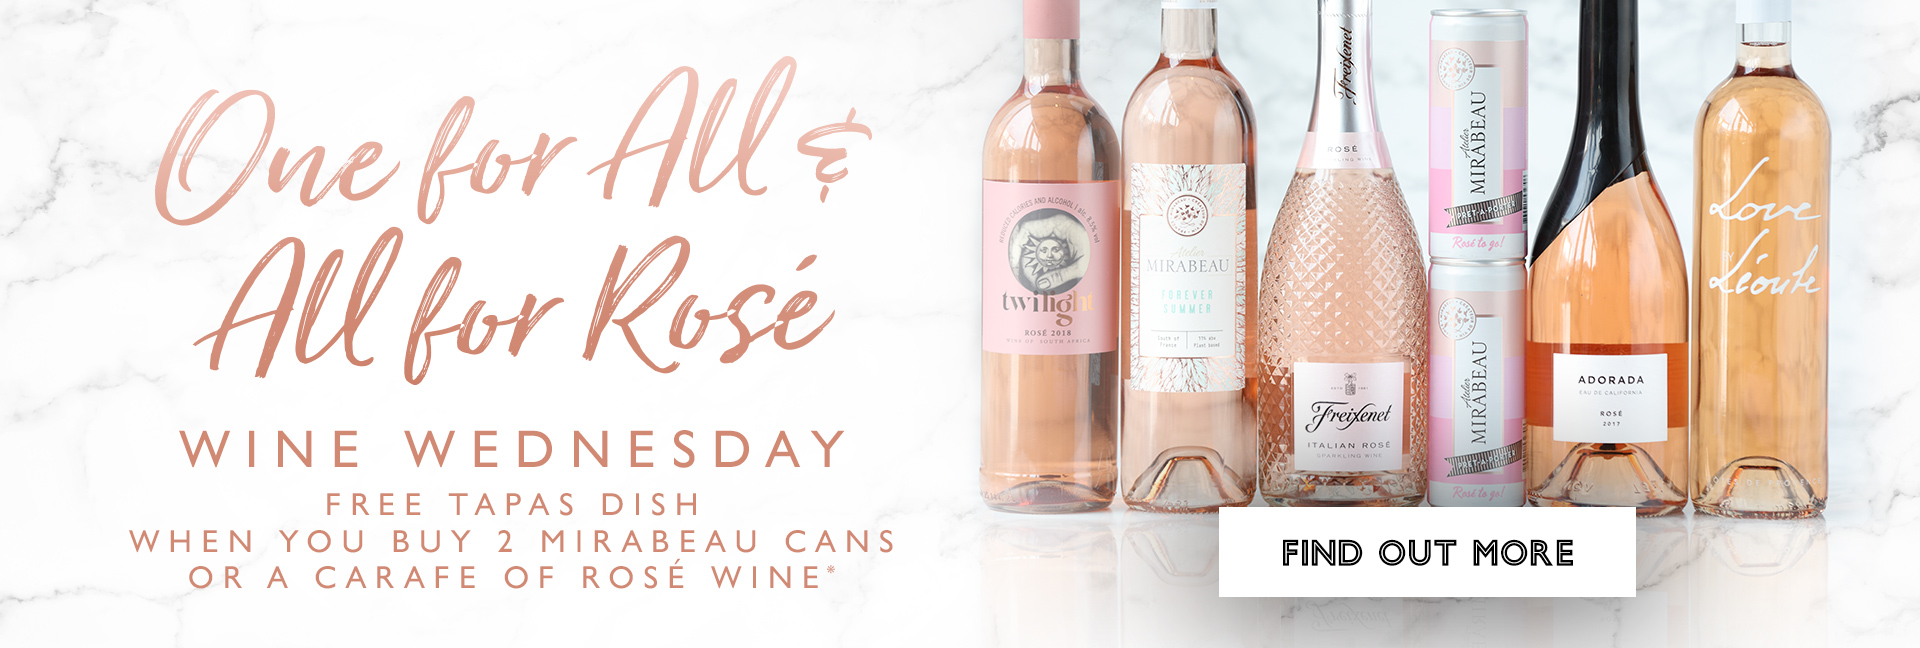 Wine Wednesdays at All Bar One Cannon Street